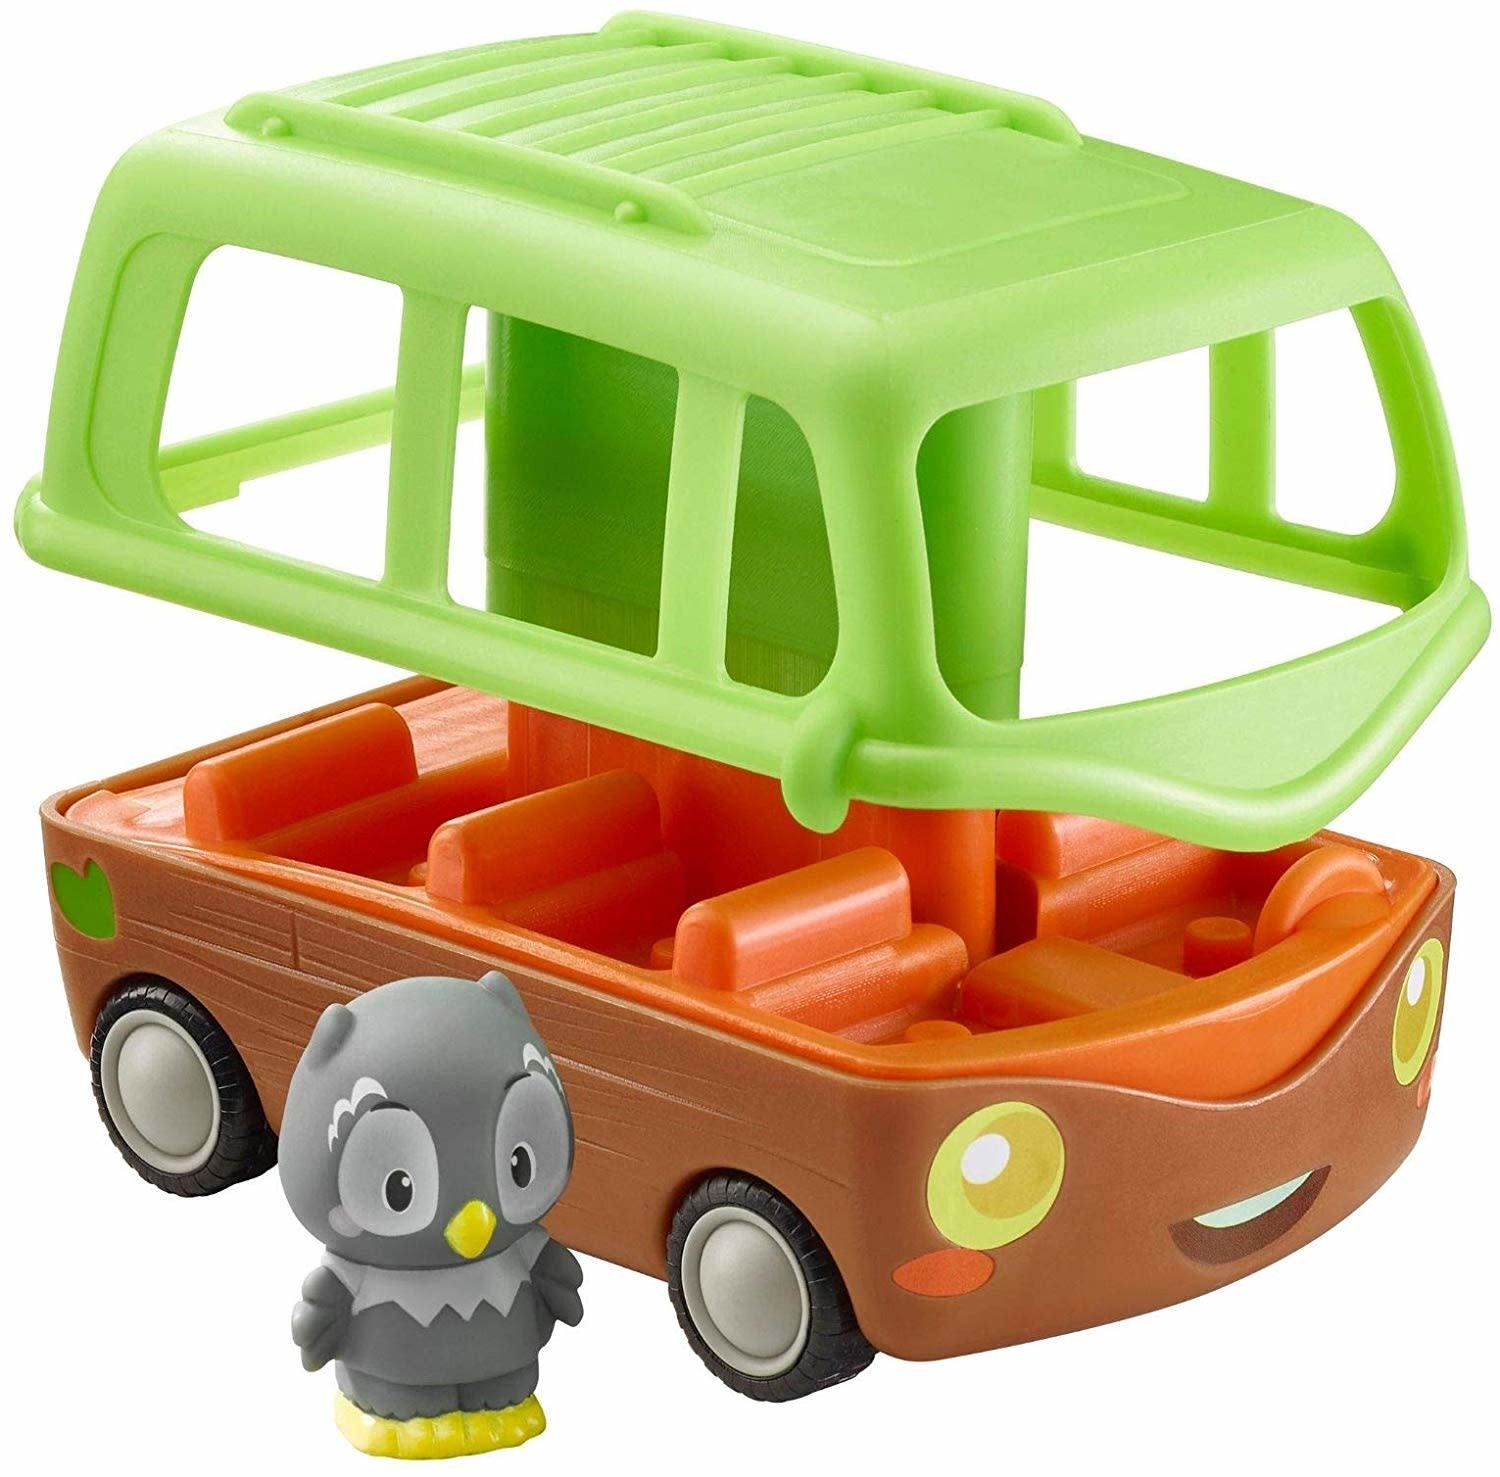 Timber Tots Timber Tots Adventure Bus by Fat Brain Toys